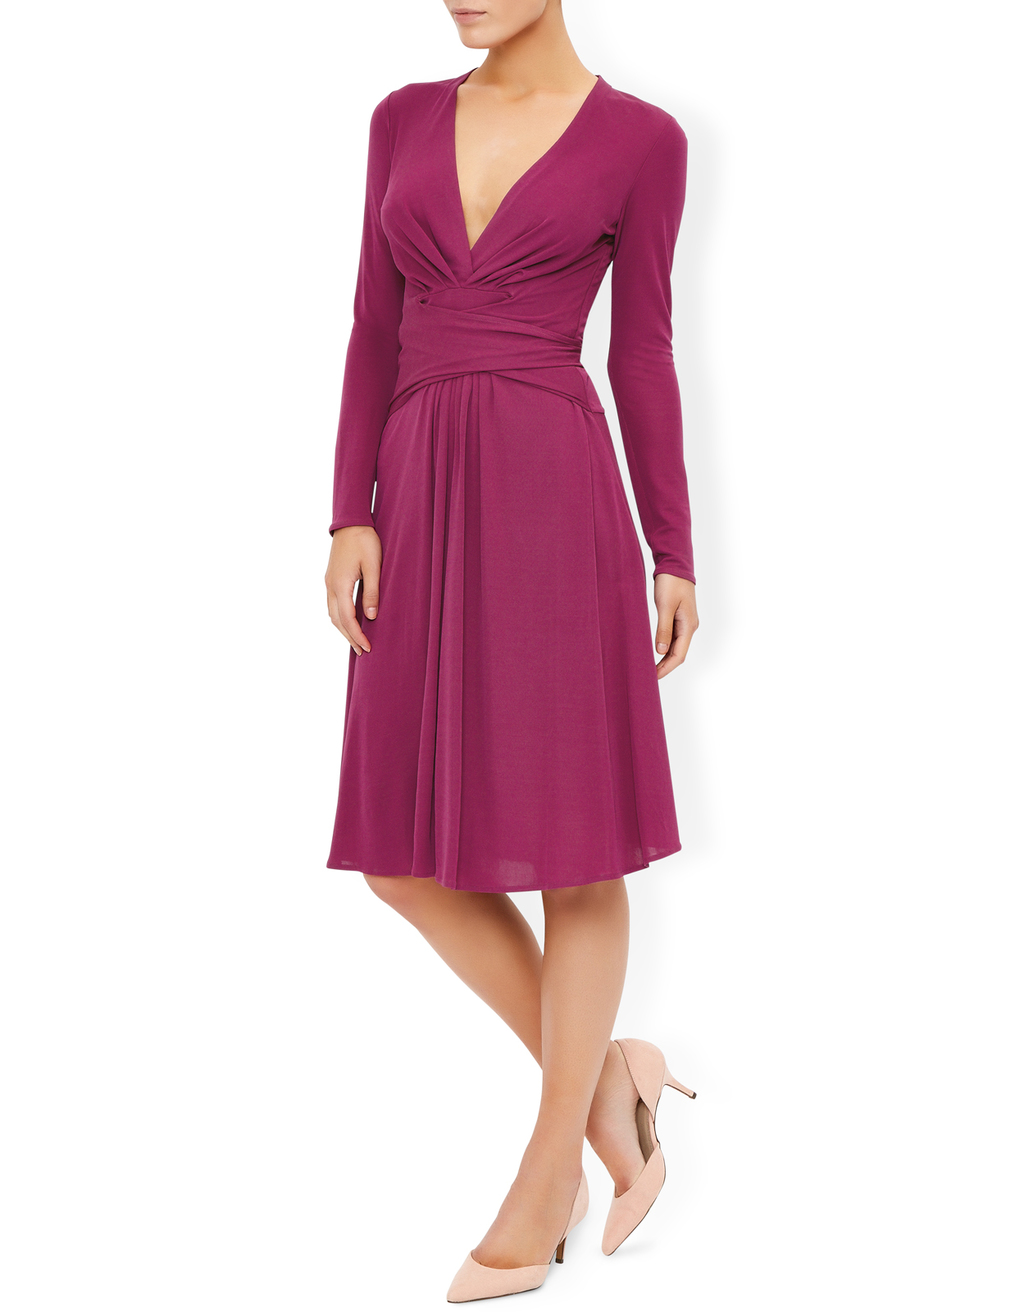 Gisele Dress - neckline: low v-neck; pattern: plain; waist detail: flattering waist detail; predominant colour: magenta; occasions: evening, occasion; length: on the knee; fit: fitted at waist & bust; style: fit & flare; fibres: viscose/rayon - 100%; sleeve length: long sleeve; sleeve style: standard; pattern type: fabric; pattern size: standard; texture group: woven light midweight; season: s/s 2016; wardrobe: event